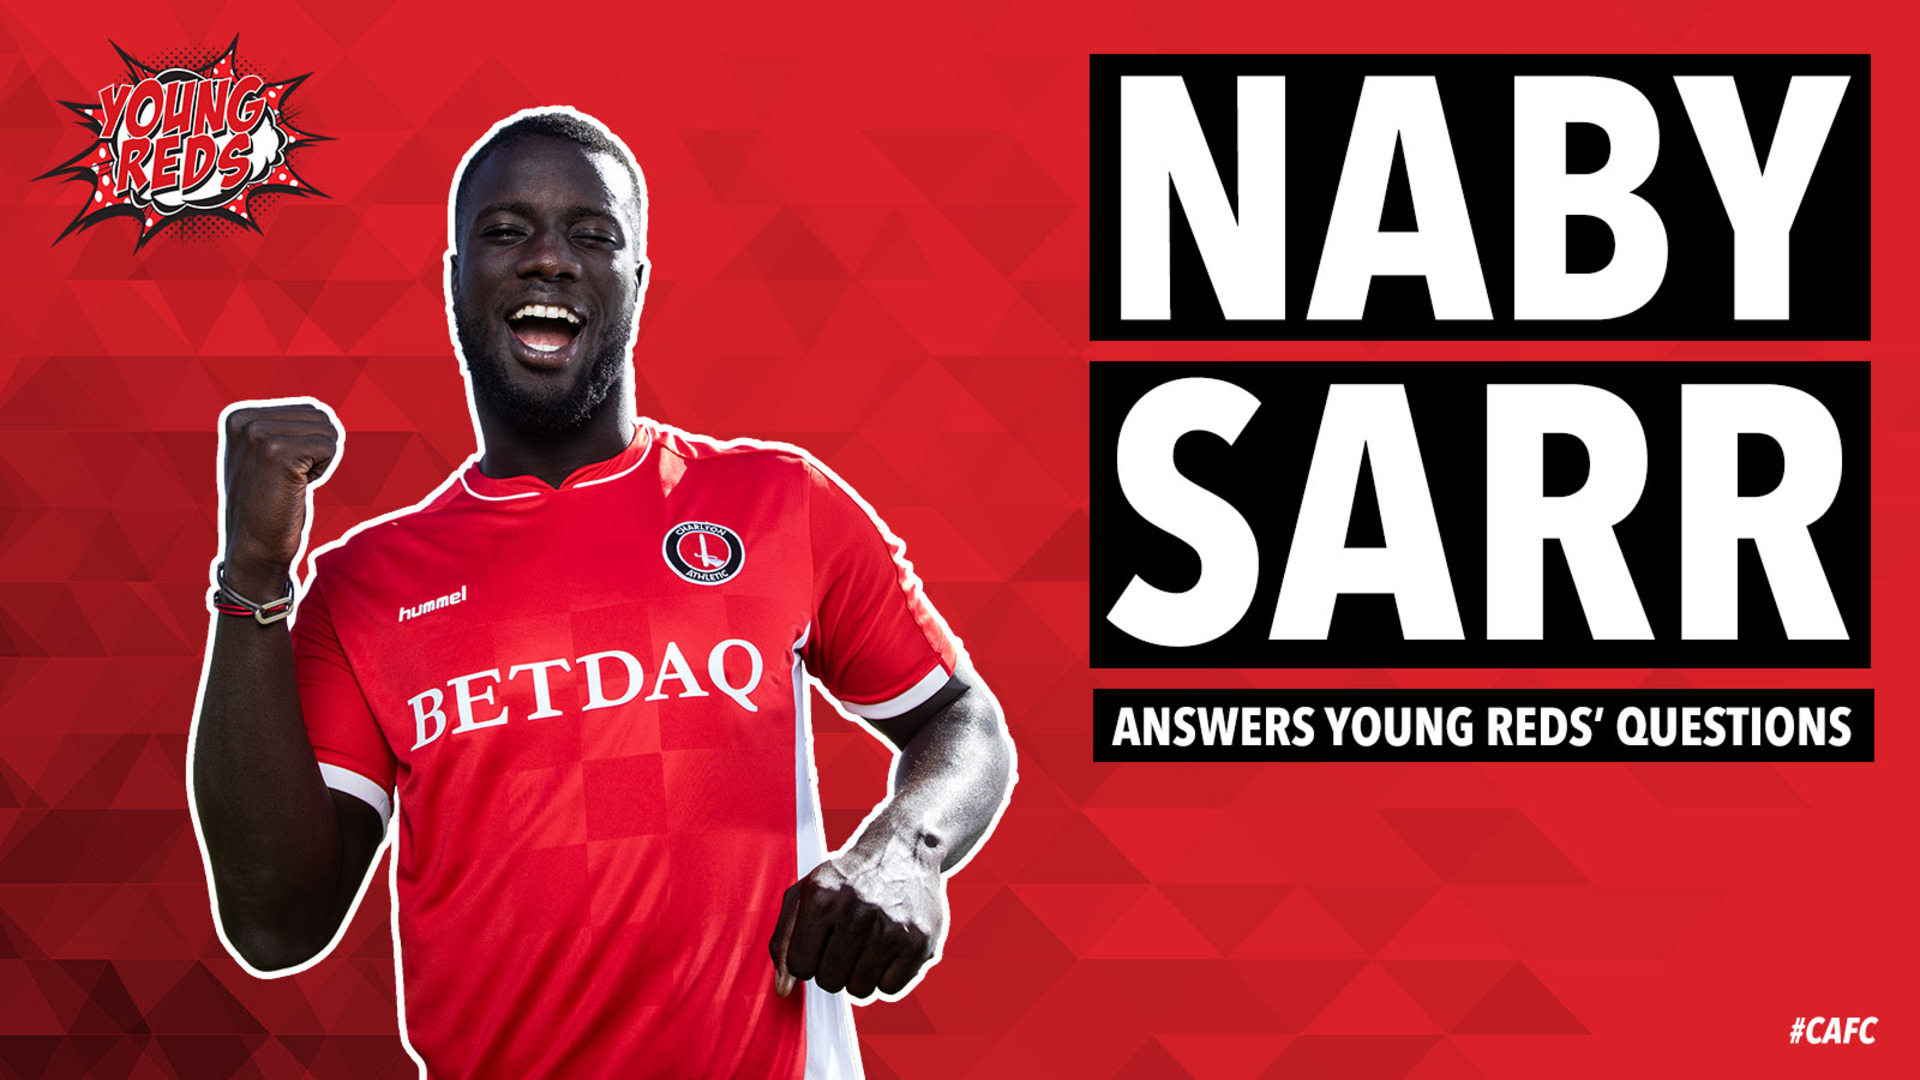 Naby Sarr answers questions from Charlton's Young Reds